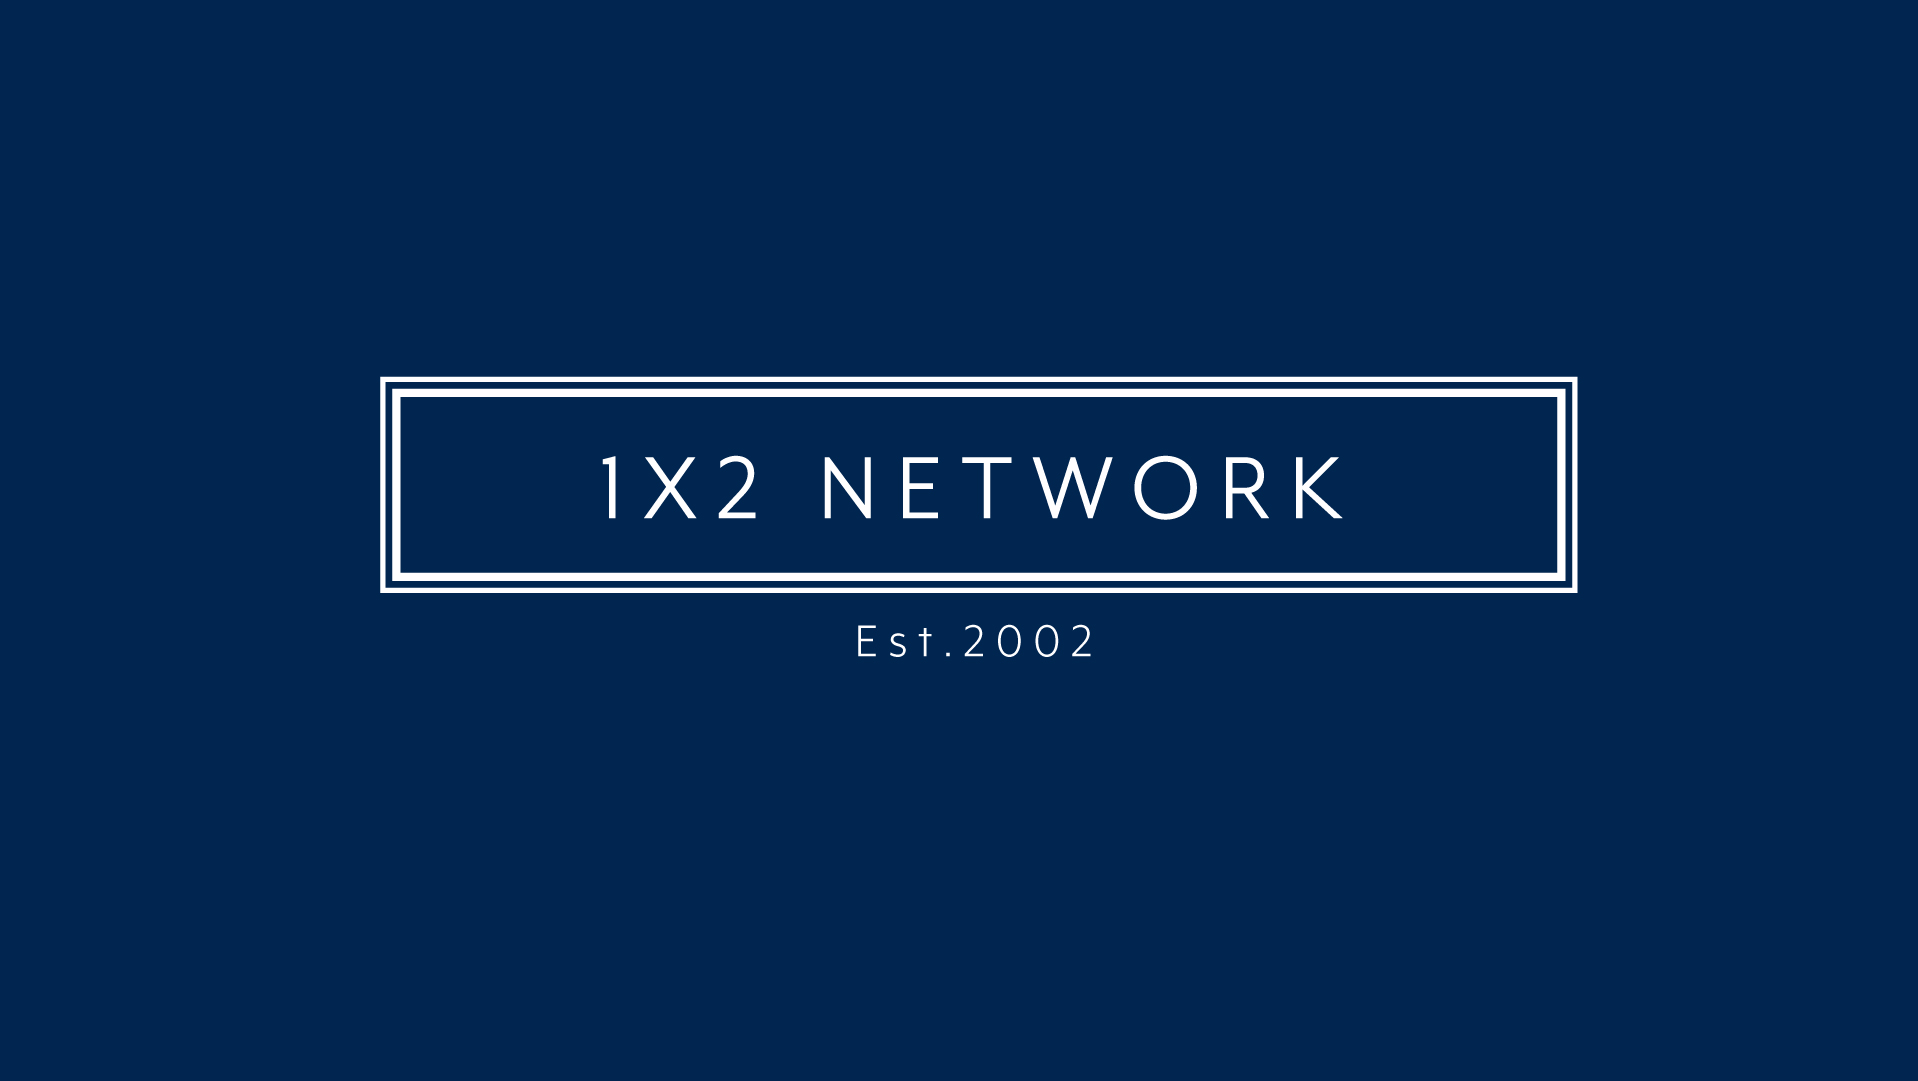 1X2 Network Adds Quality Content With Black Pudding Games